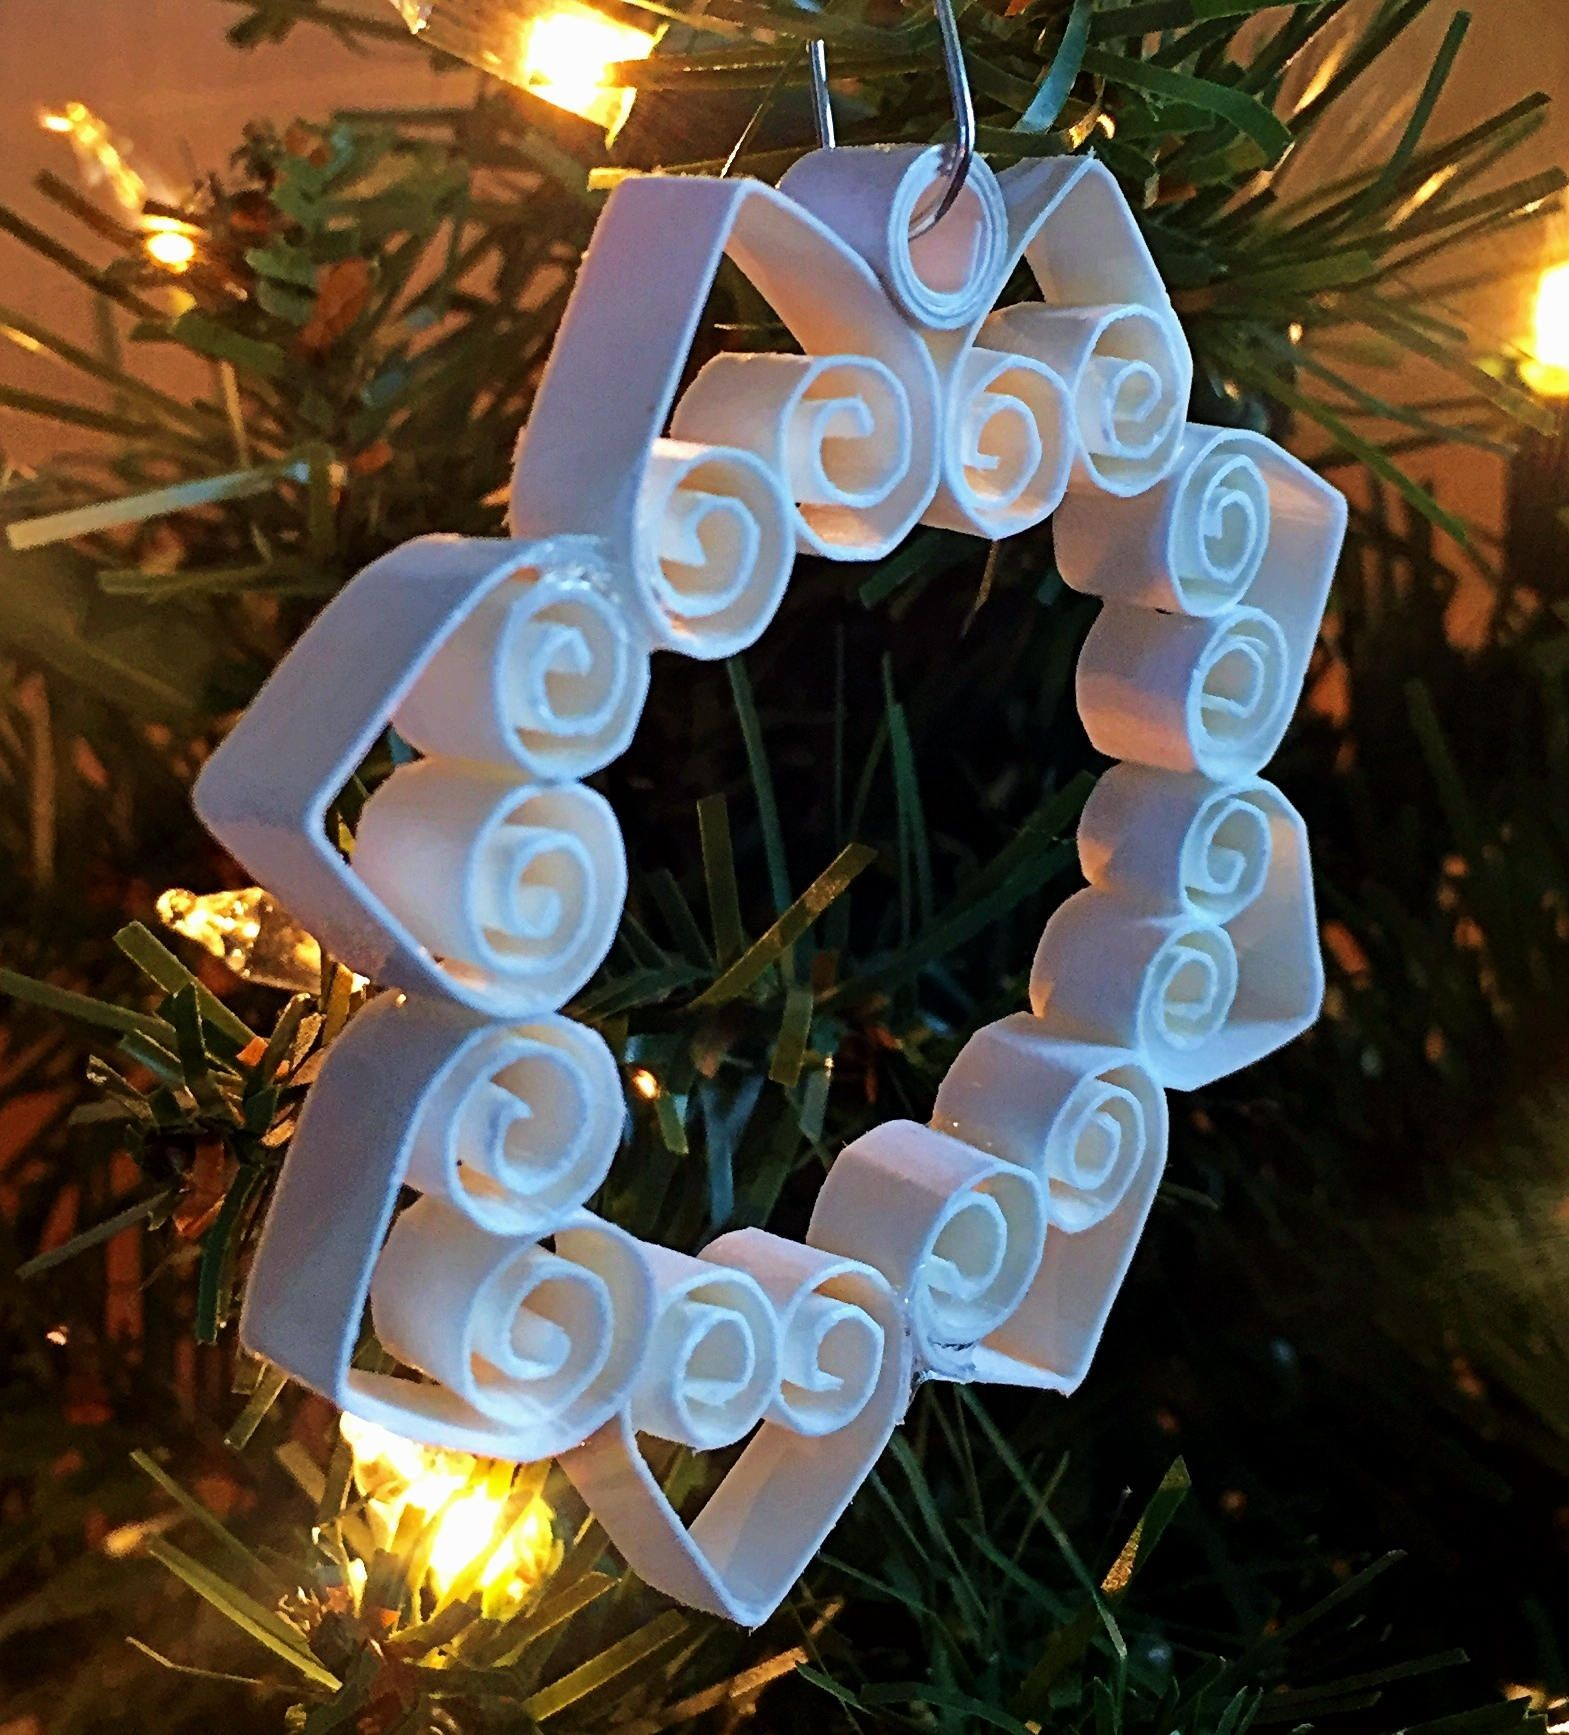 Papercraft Christmas ornaments ornament Decoration Snowflake Quilled Paper Quilling Christmas